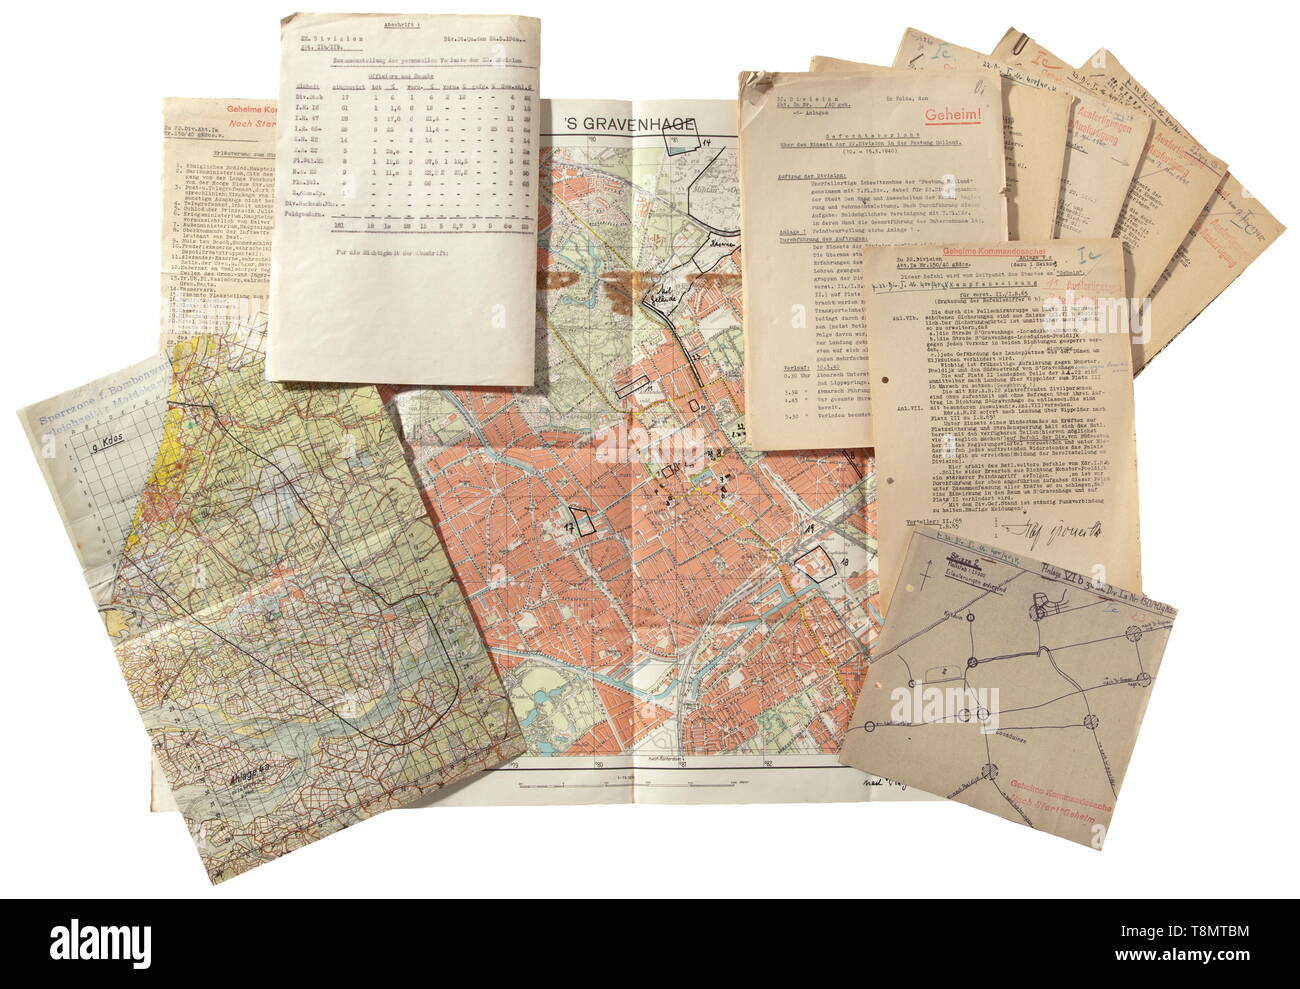 Geheime Kommandosache (secret command document) - documentation relating to the paratrooper mission (Luftlandeverband Student) to seize the 'Fortress Holland' Extensive documentation and cartographic material relating to the Airborne Forces' operation led by General Kurt Student with the units under his command (7th Flight Division and 22nd Infantry Division). Includes app 20th century, Editorial-Use-Only - Stock Image